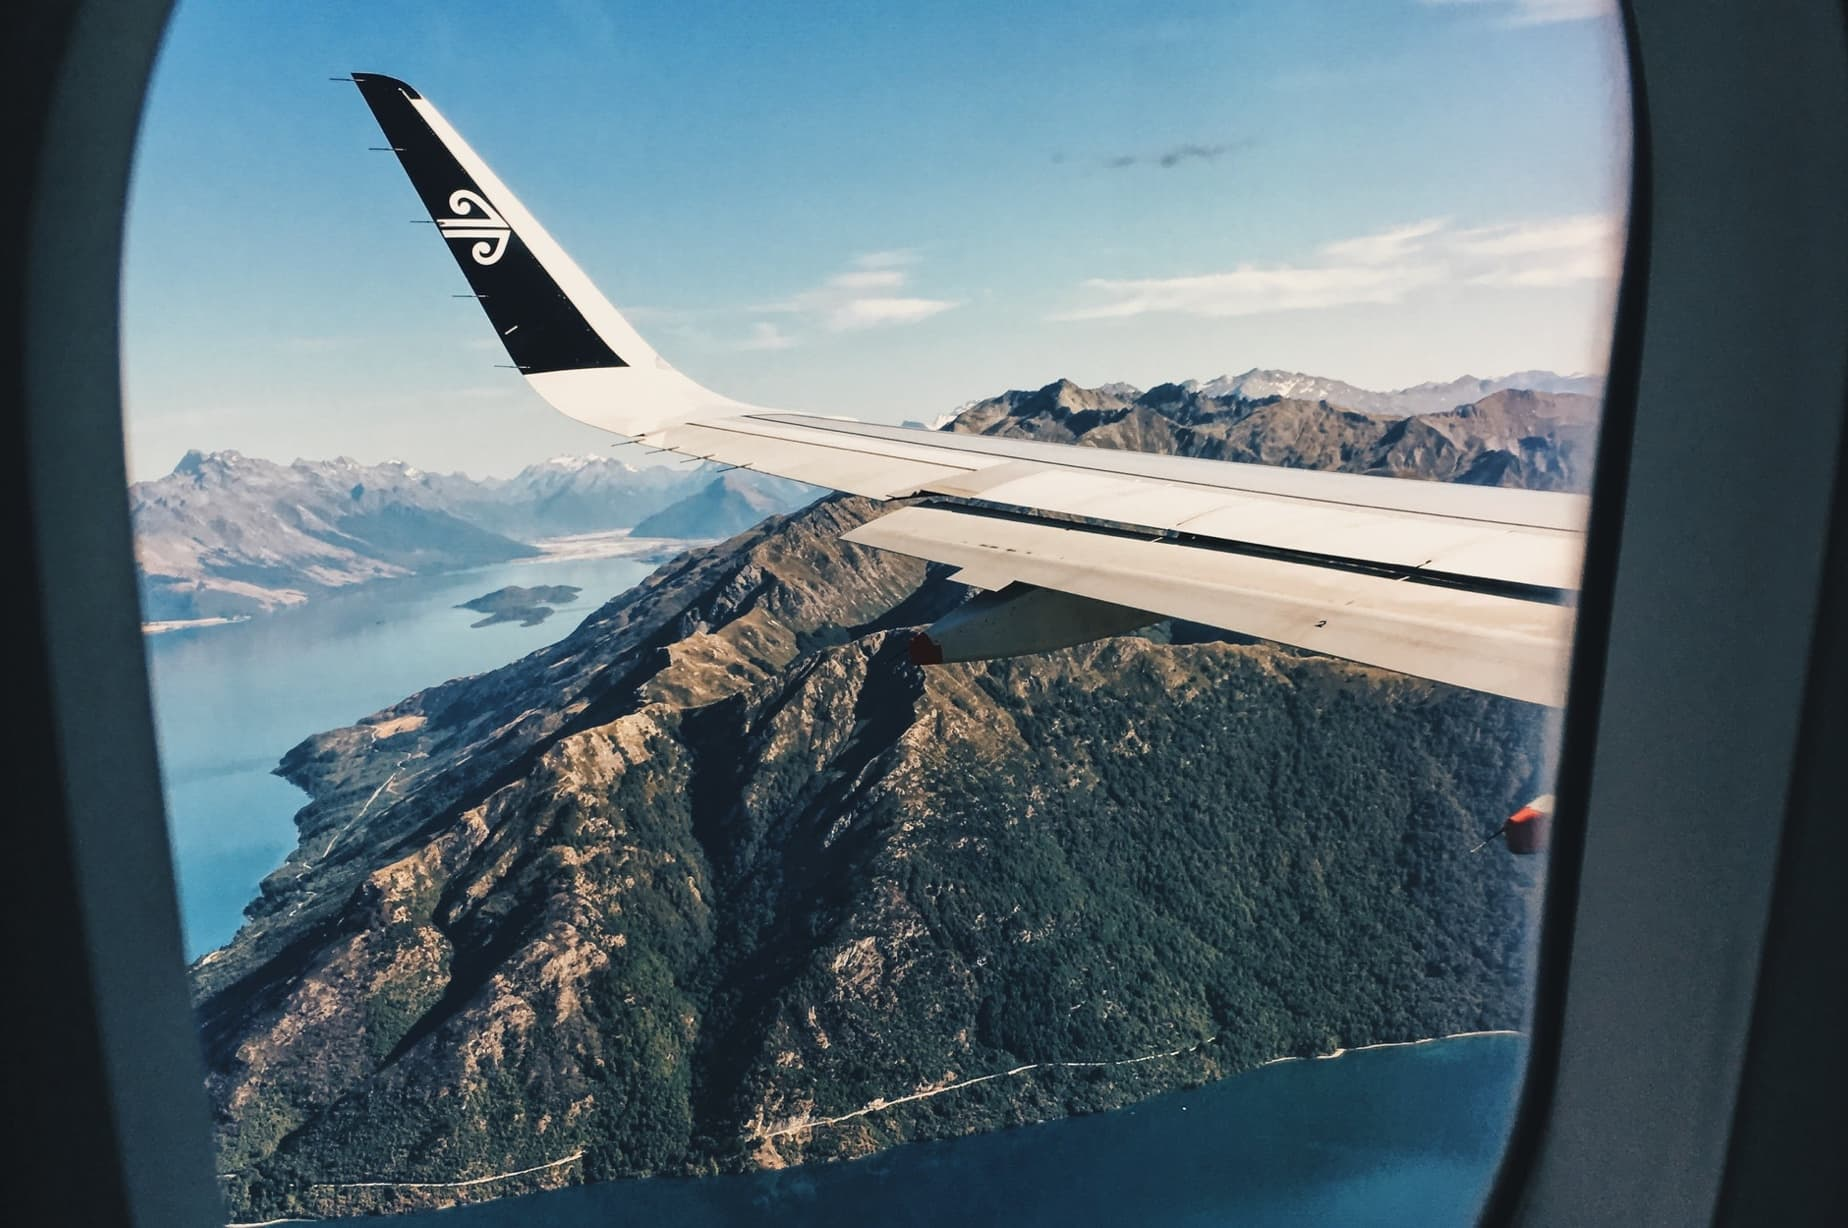 View from an airplane window at the wings and flying over a scenic landscape of green hills and rivers as you arrive in New Zealand